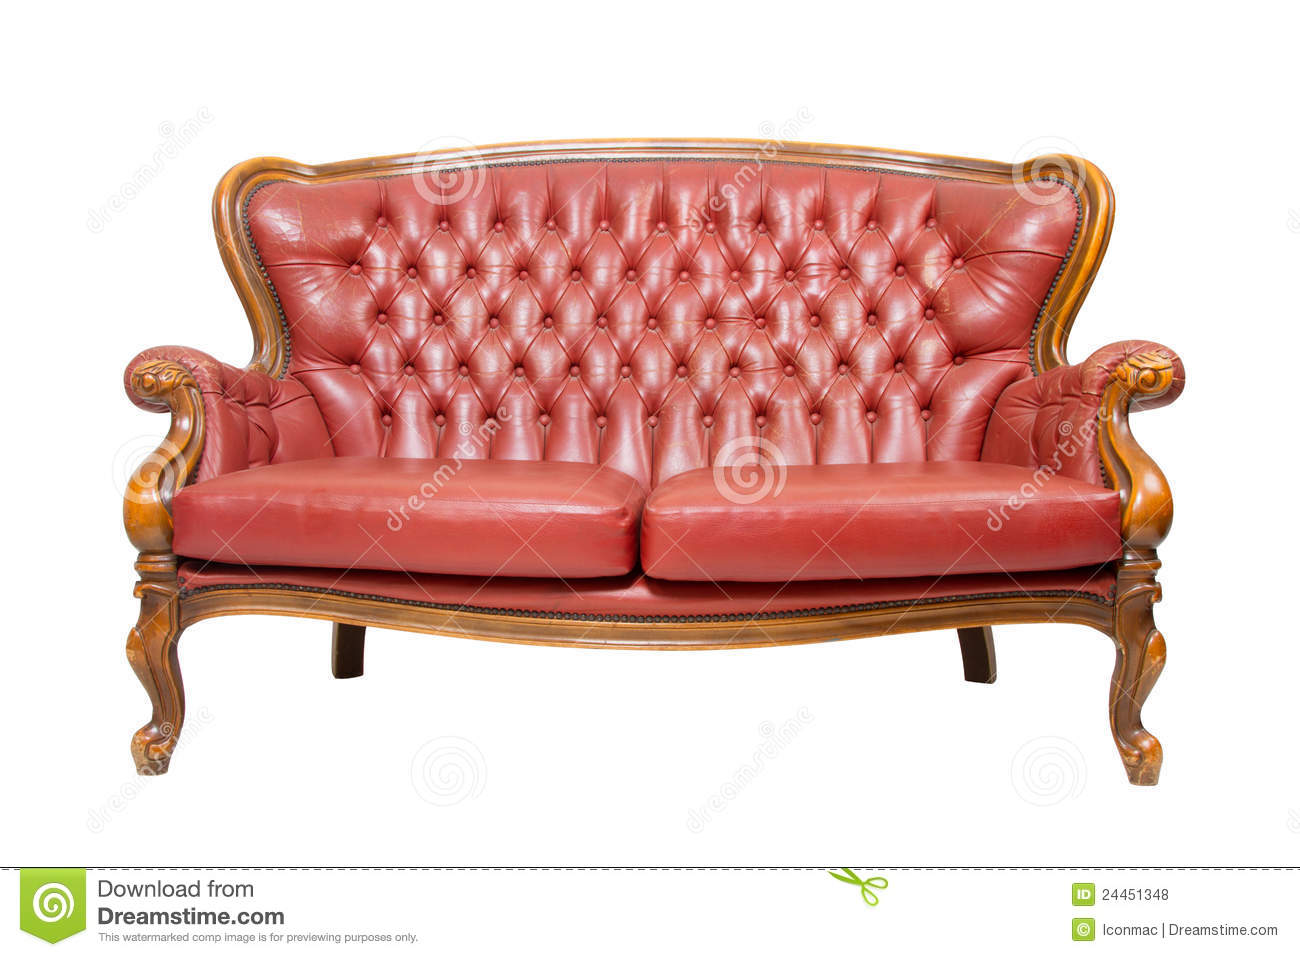 Sofa Vermelho Retro Luxury Vintage Red Sofa Stock Photo Image Of Design 24451348